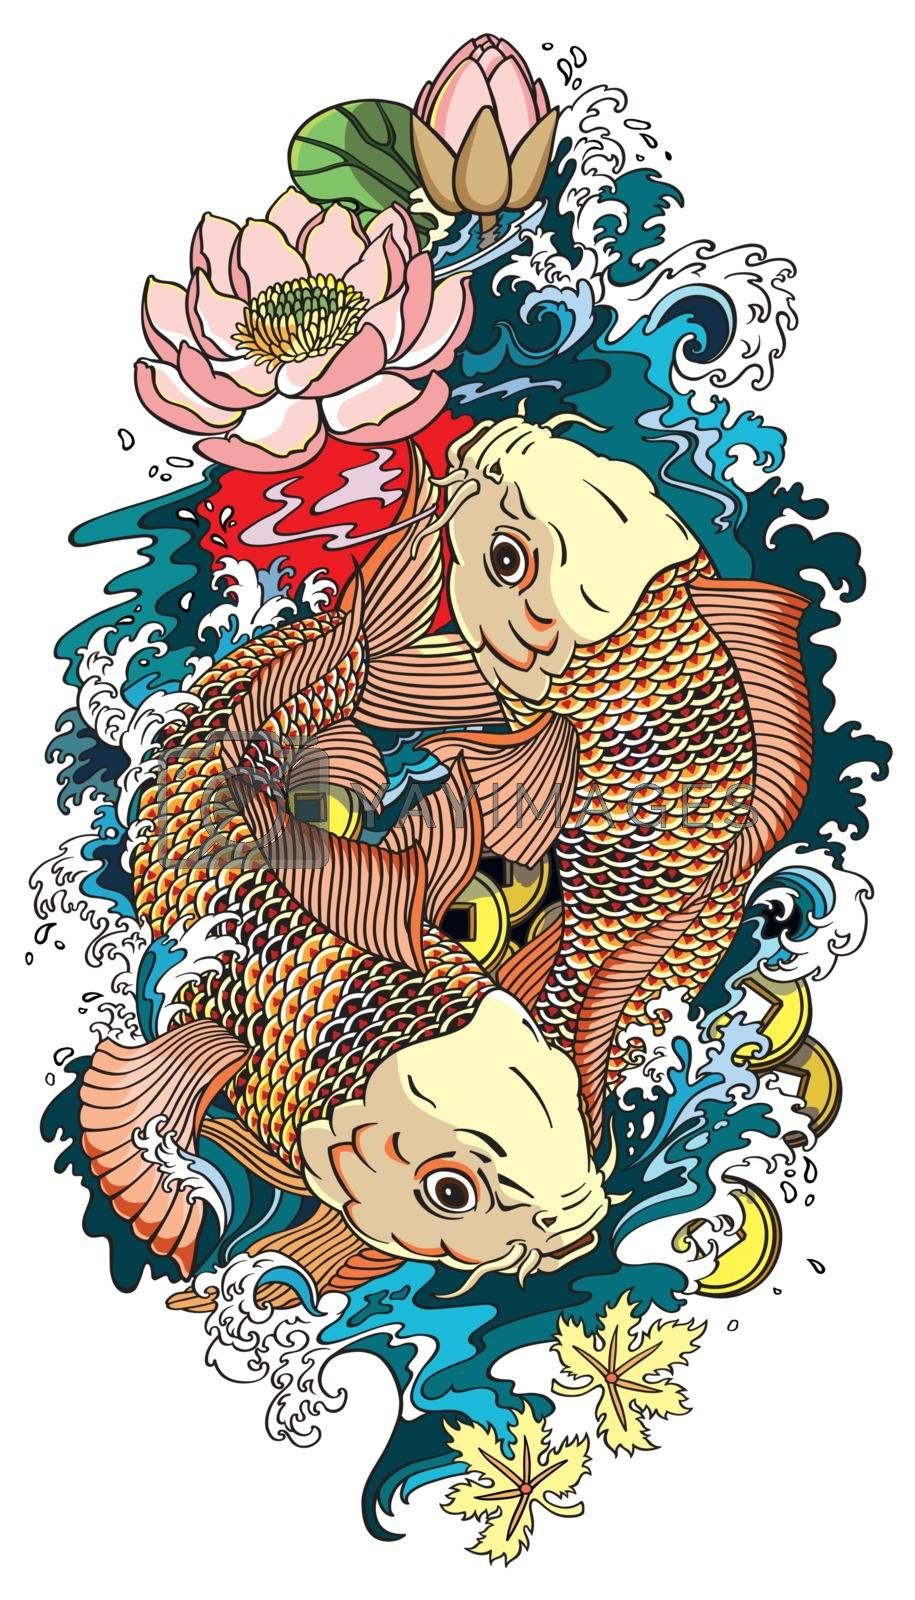 two koi gold carp fishes . Lotus flower with water splash and feng shui money coins . Illustration tattoo style drawing